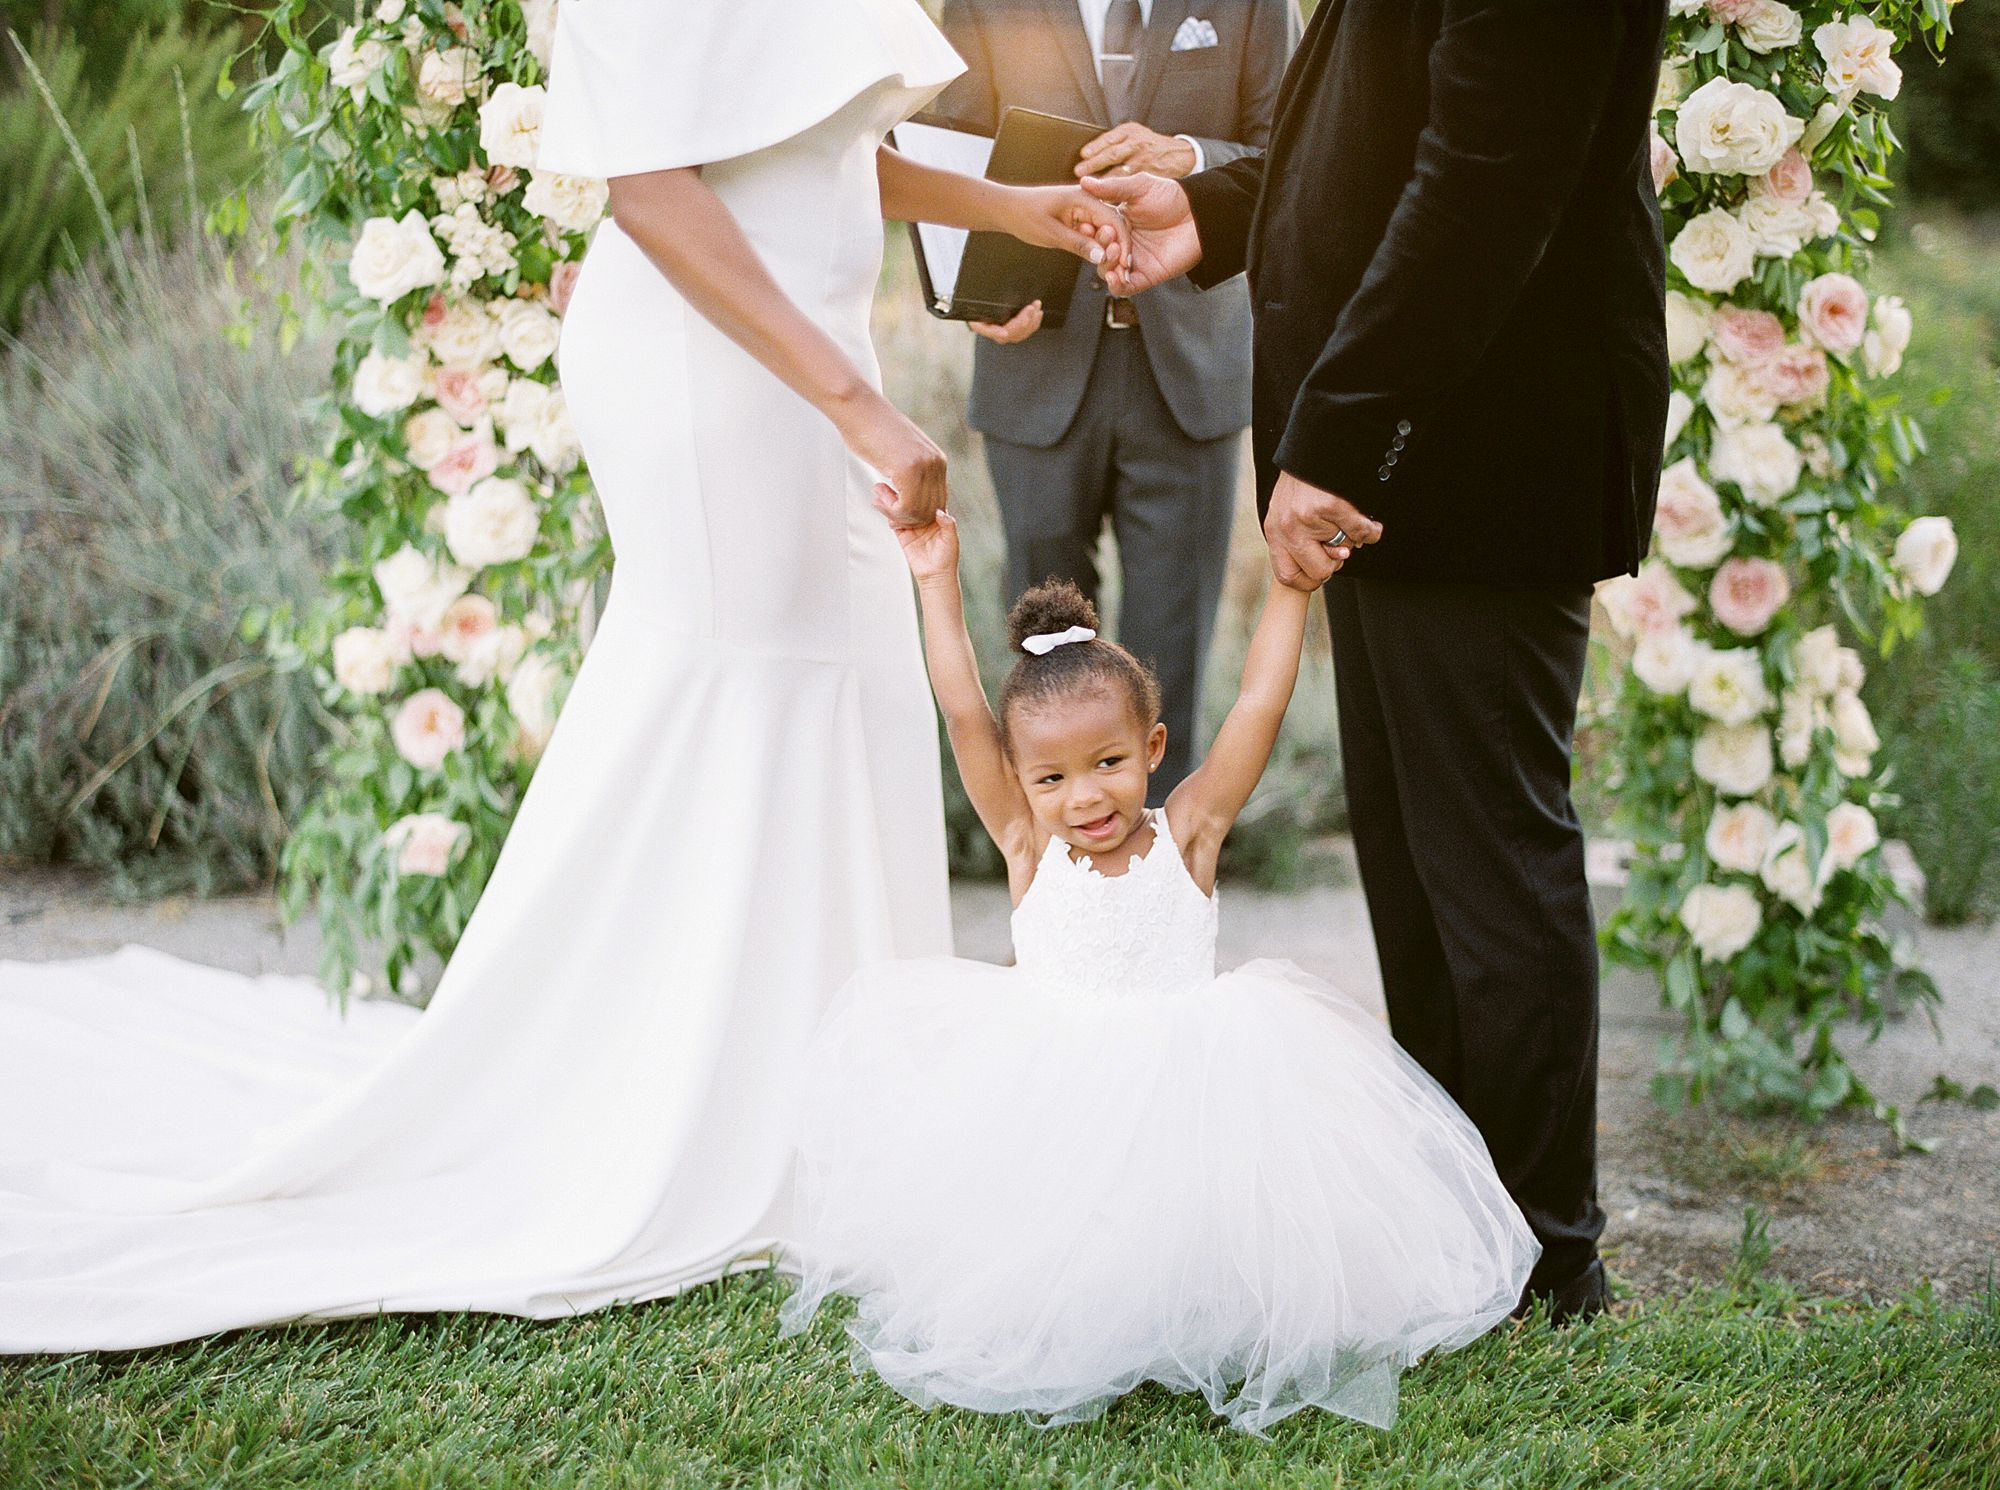 Park Winters Micro-Wedding Inspiration on Style Me Pretty - Stephanie Teague Events - Ashley Baumgartner - Park Winters Wedding - Black Tie Wedding - Micro-Wedding Sacramento Photographer_0032.jpg